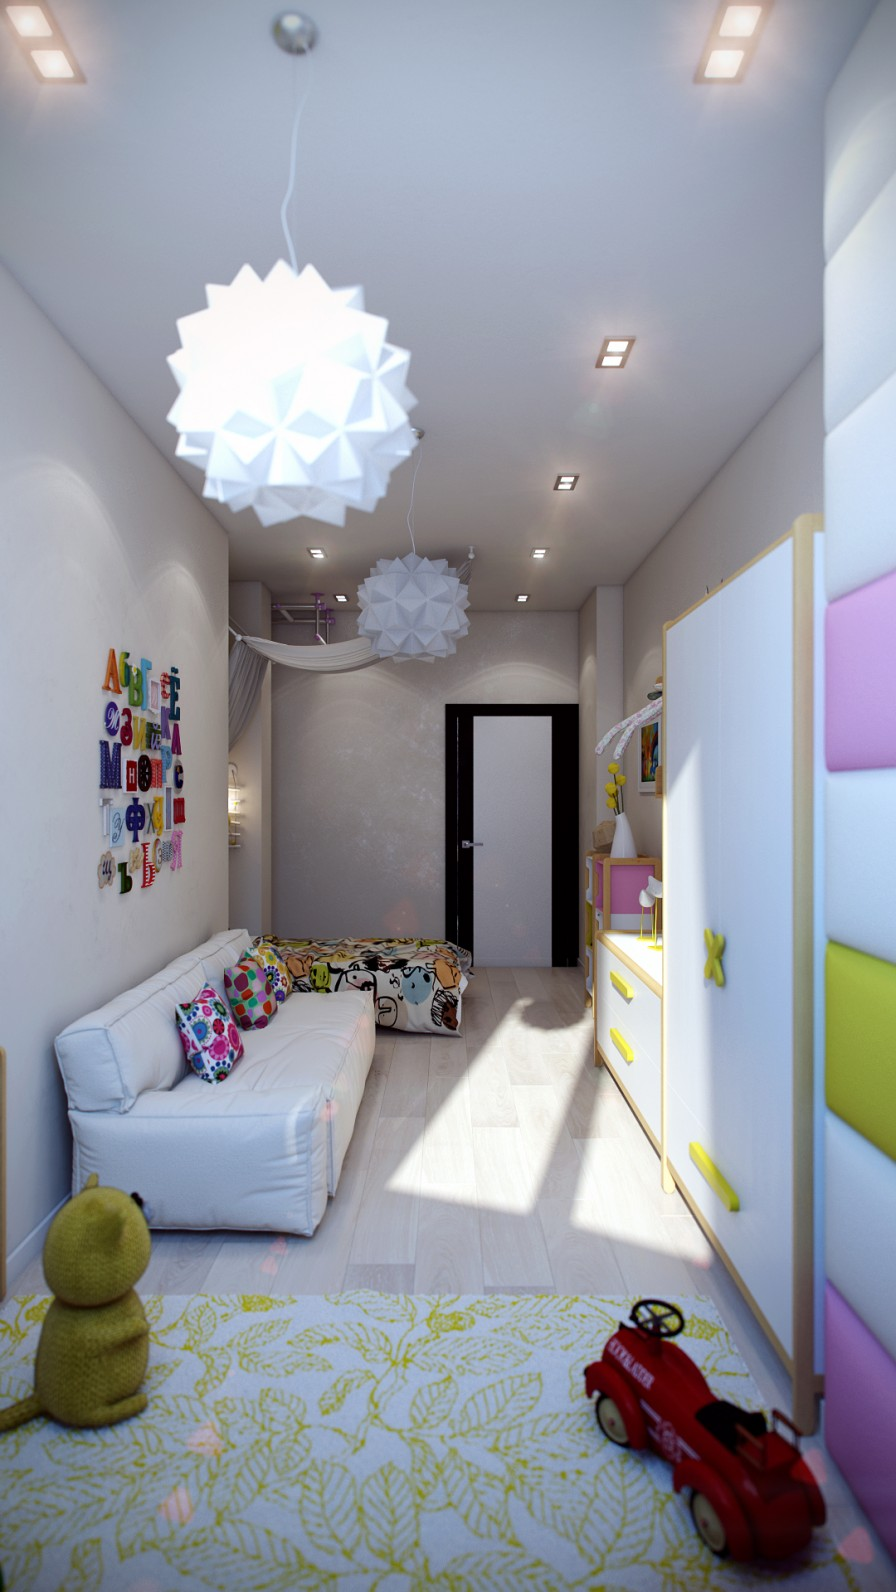 White Kids Room With Colorful Accents - Crisp and colorful kids room designs